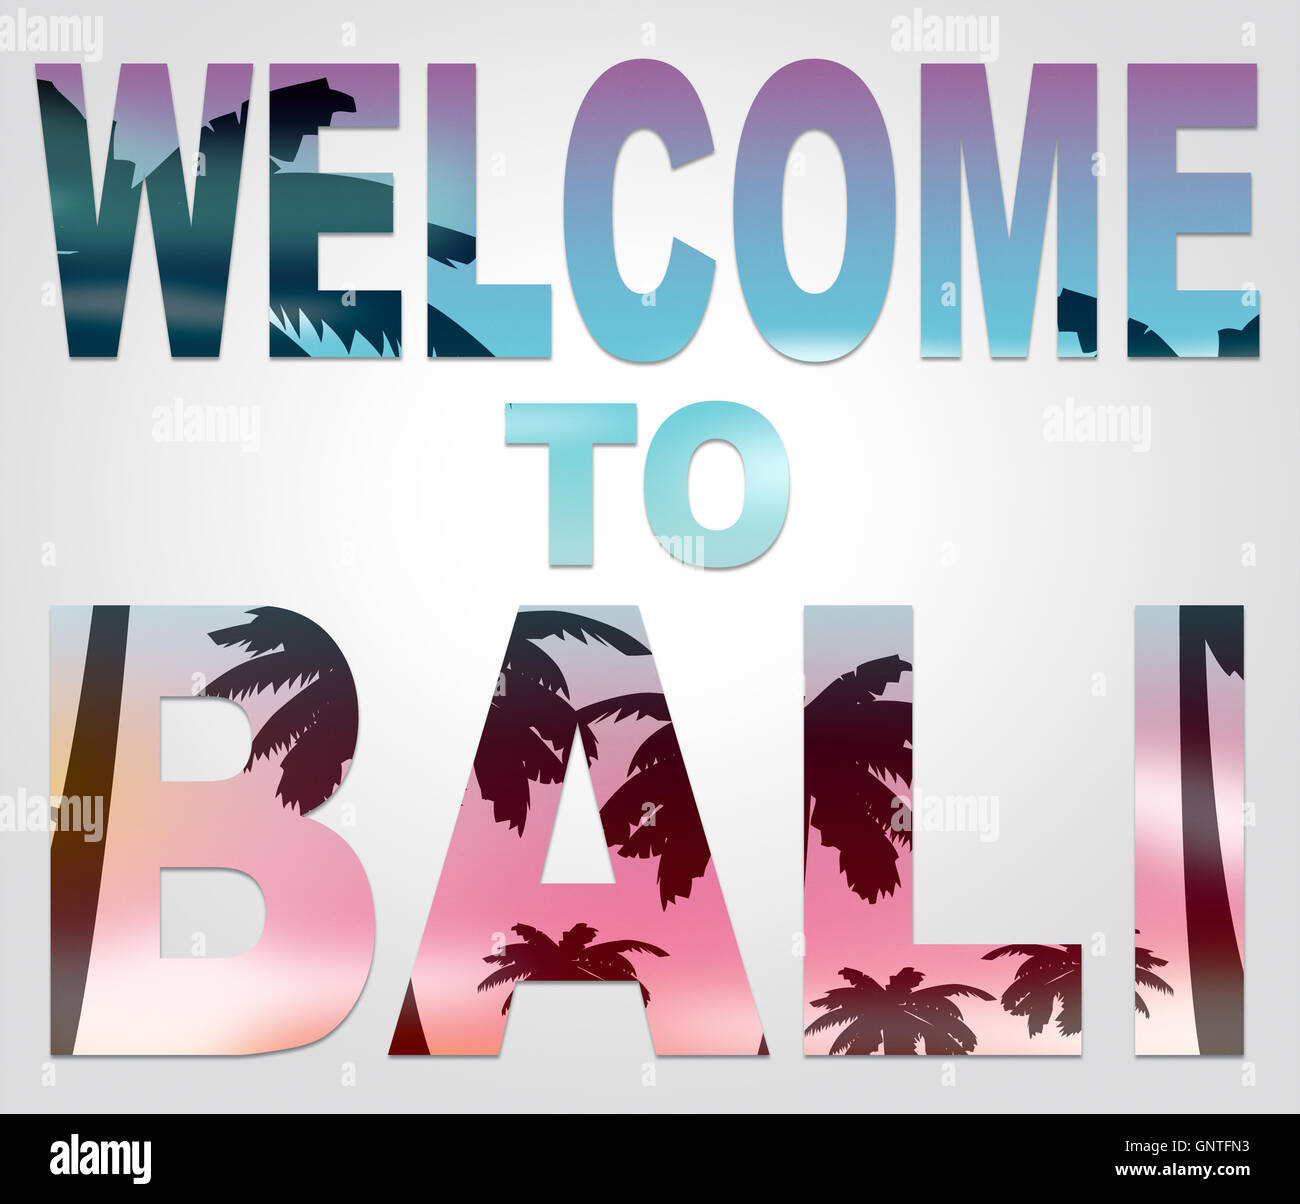 Welcome to bali meaning holidays arrival and greetings stock photo welcome to bali meaning holidays arrival and greetings altavistaventures Choice Image